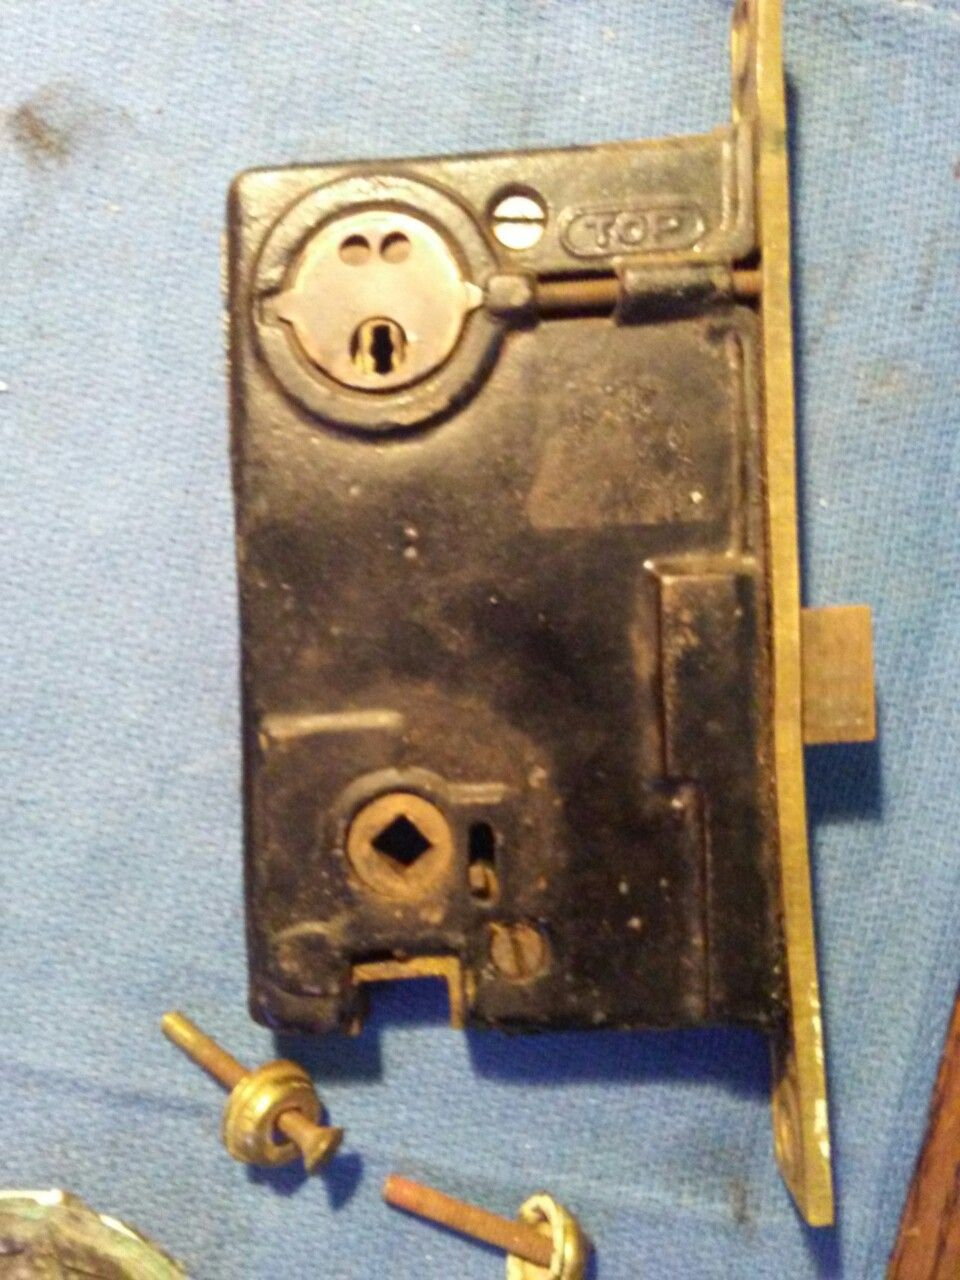 Penn mortise lock        Ordered on line at ebay    all lady